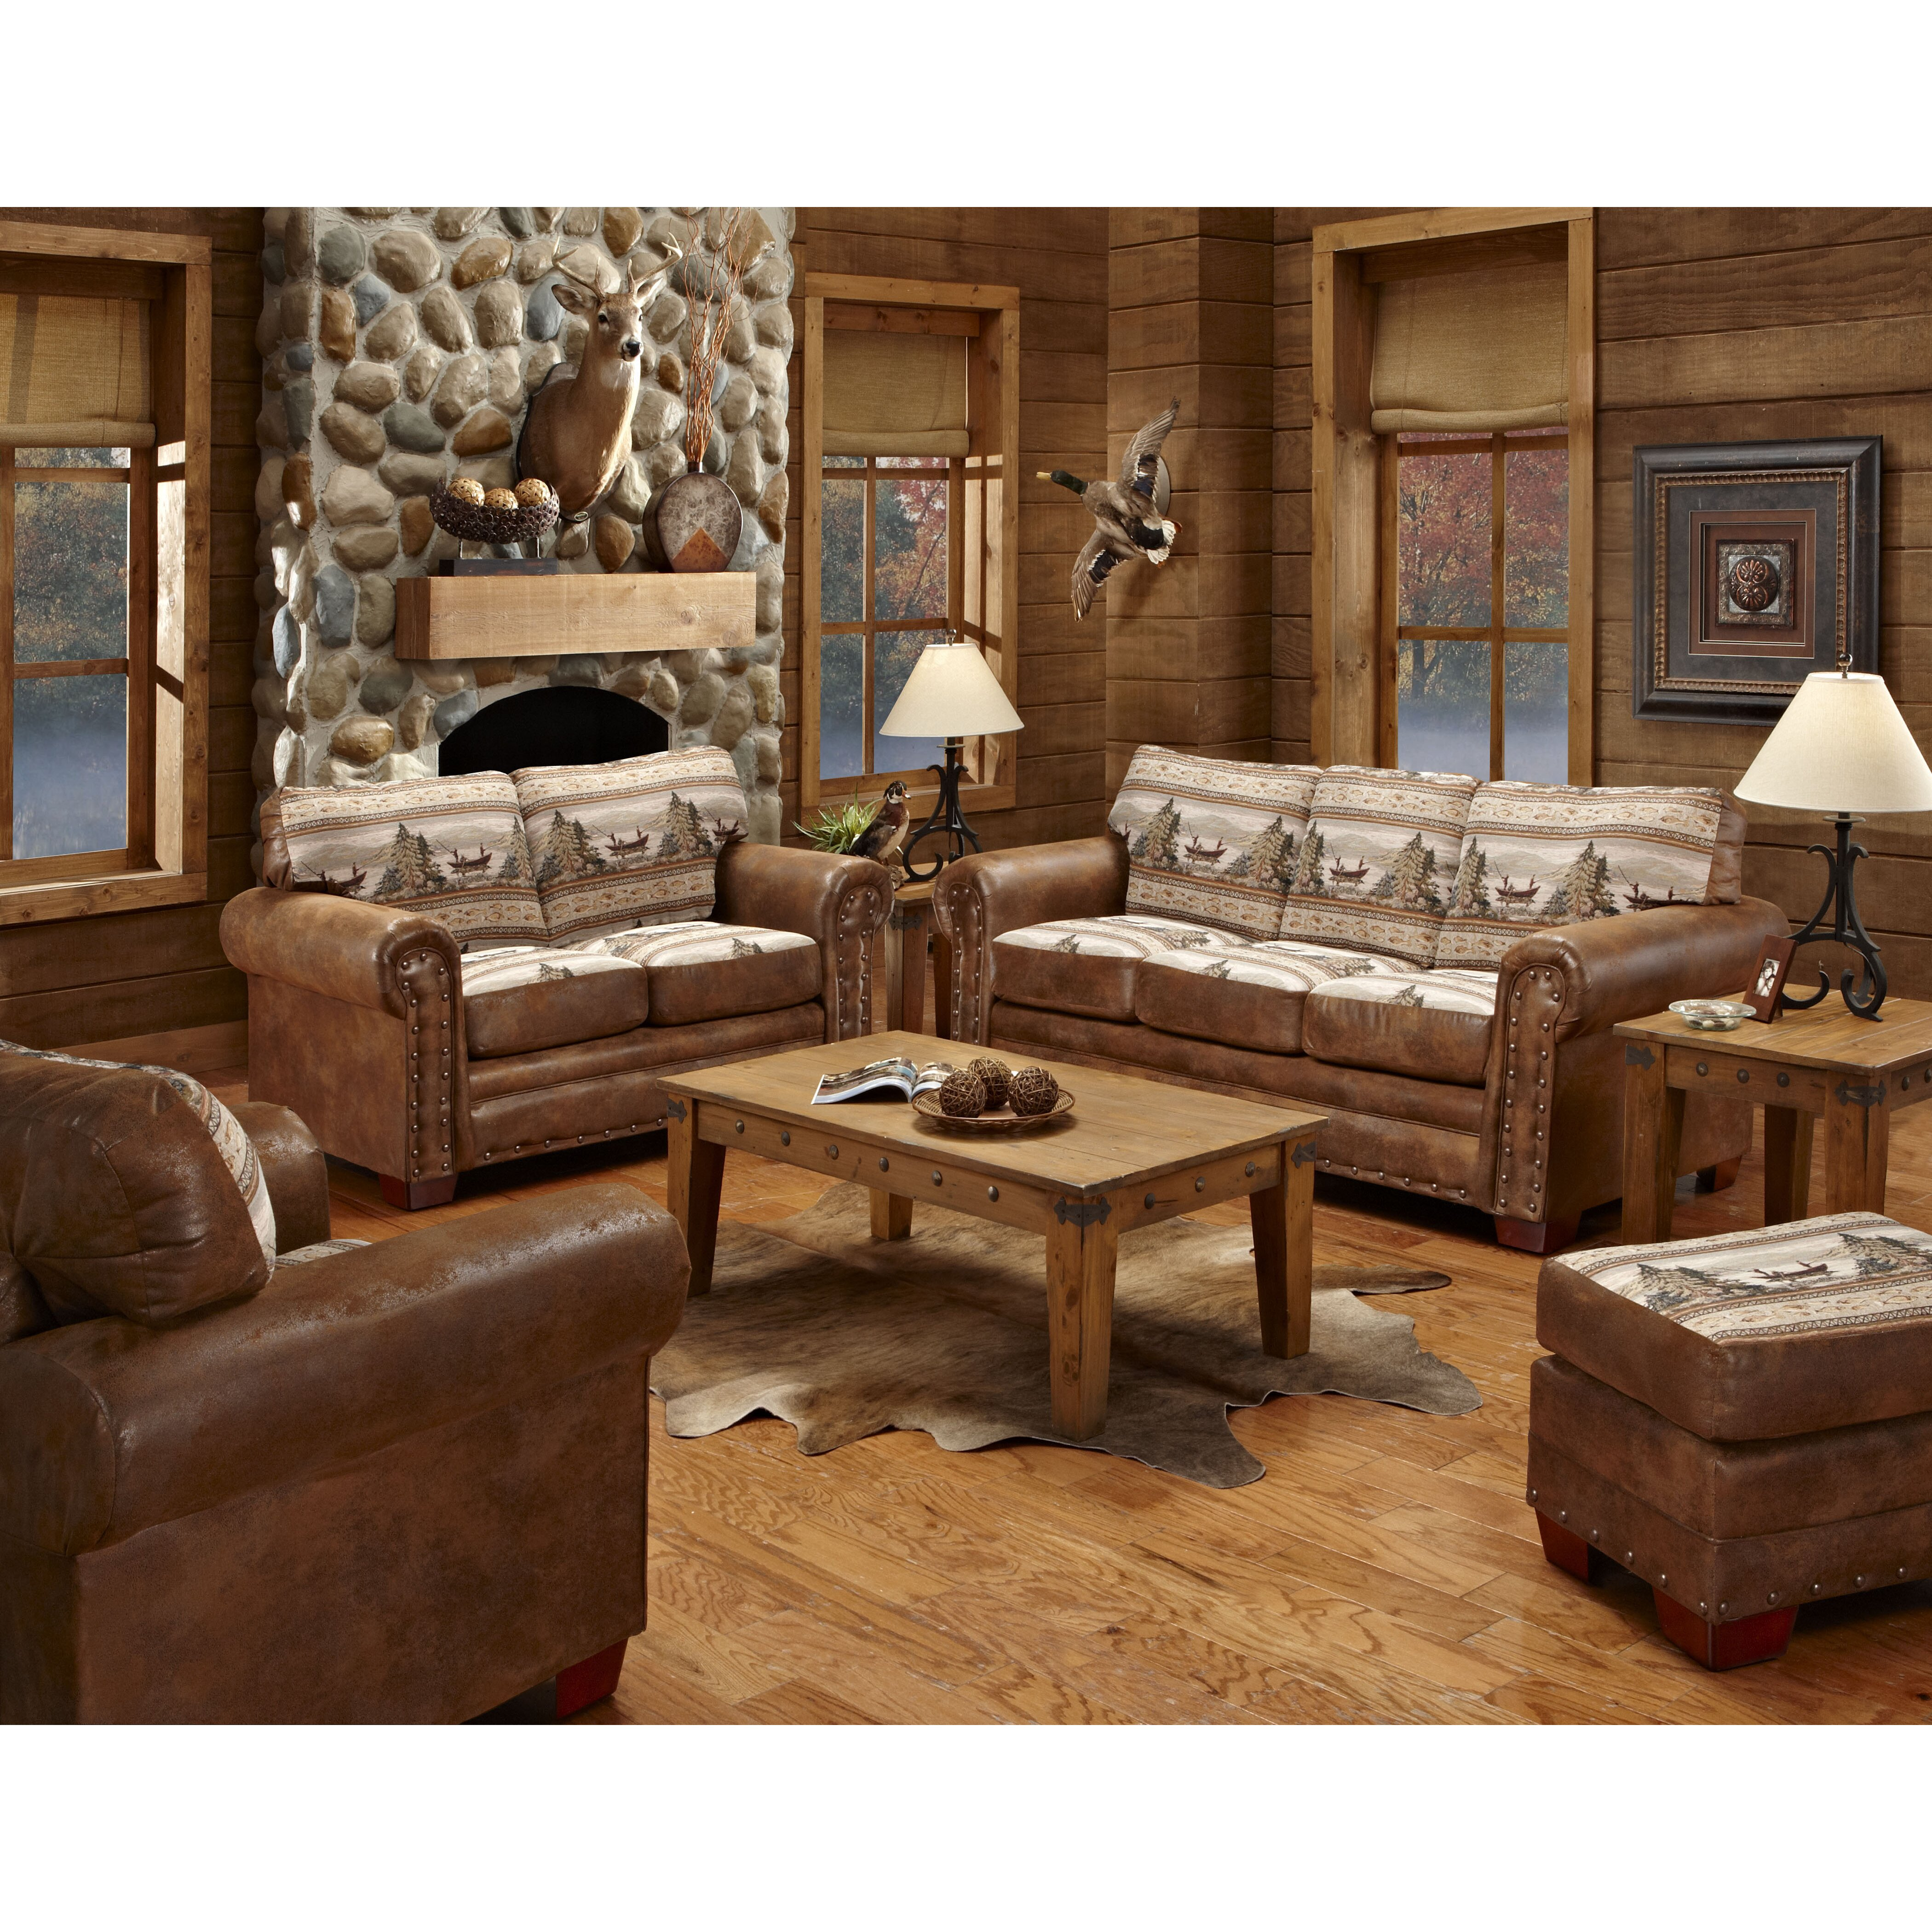 American furniture classics alpine lodge 4 piece living for 4 piece living room set